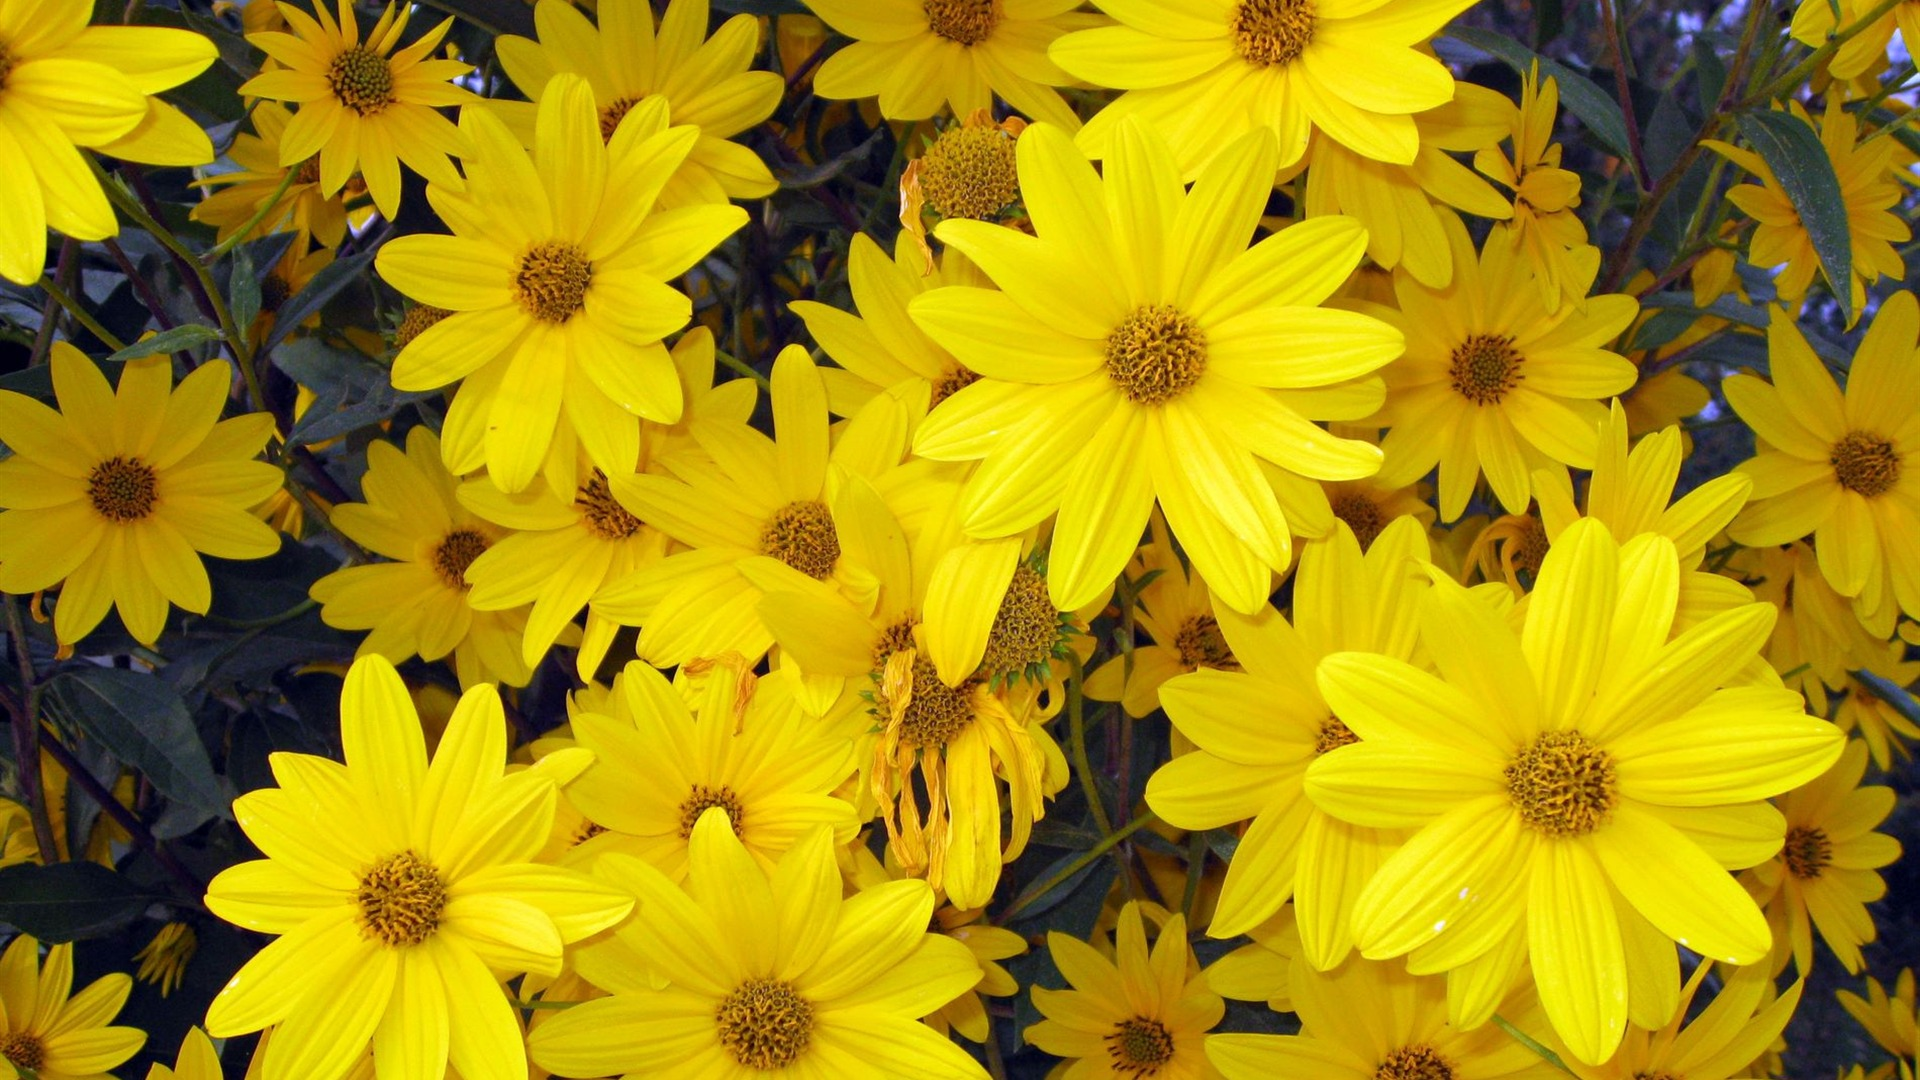 yellow flowers wallpapers pack - photo #36